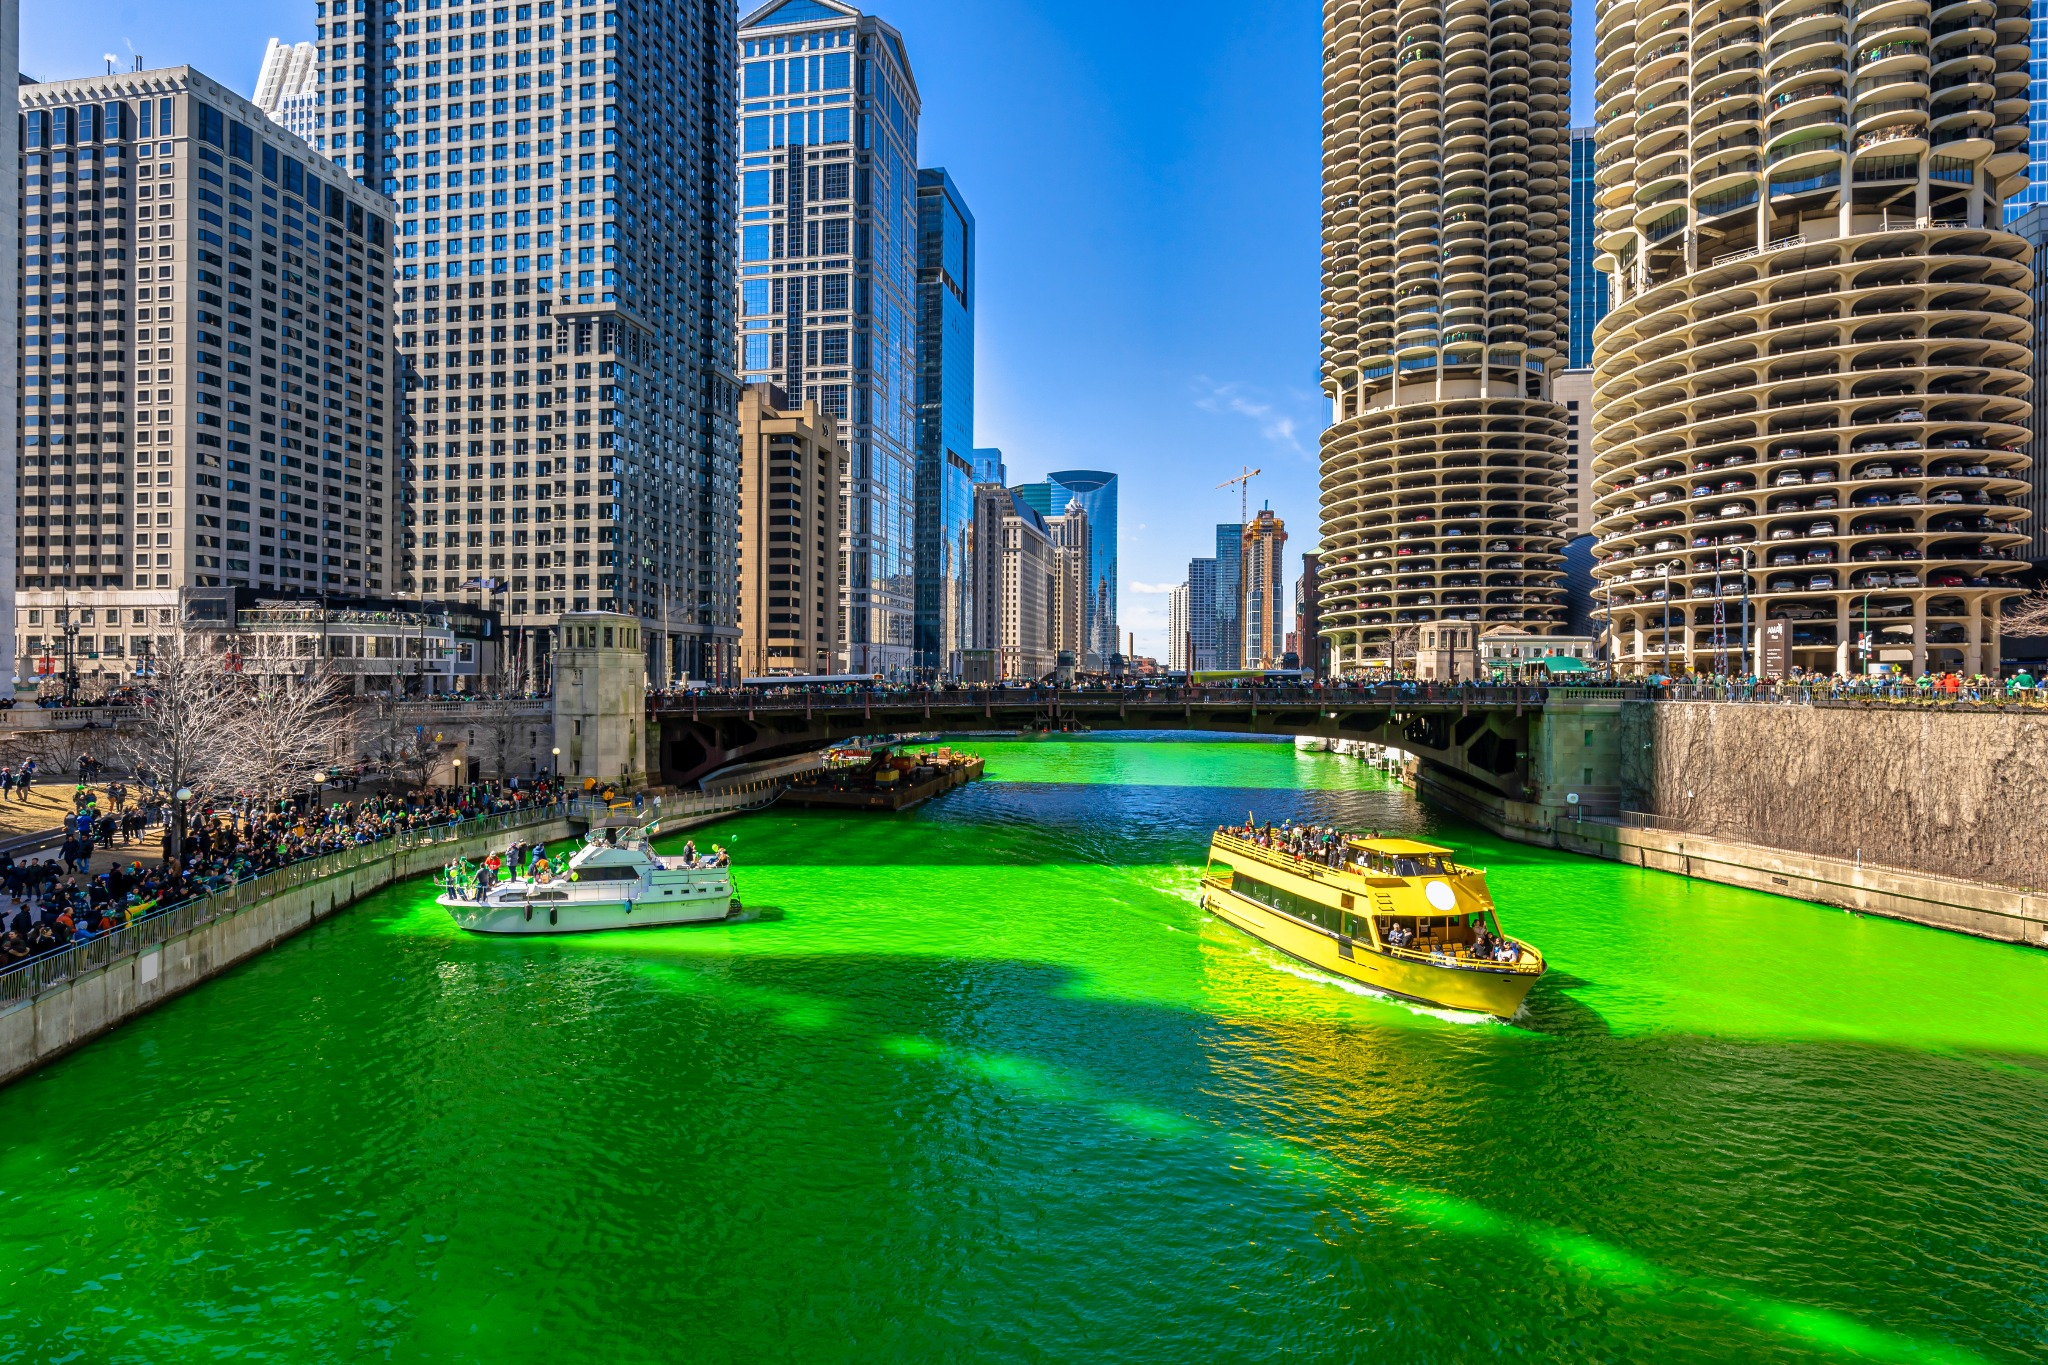 The Chicago river dyed green to celebrate St. Patrick's Day